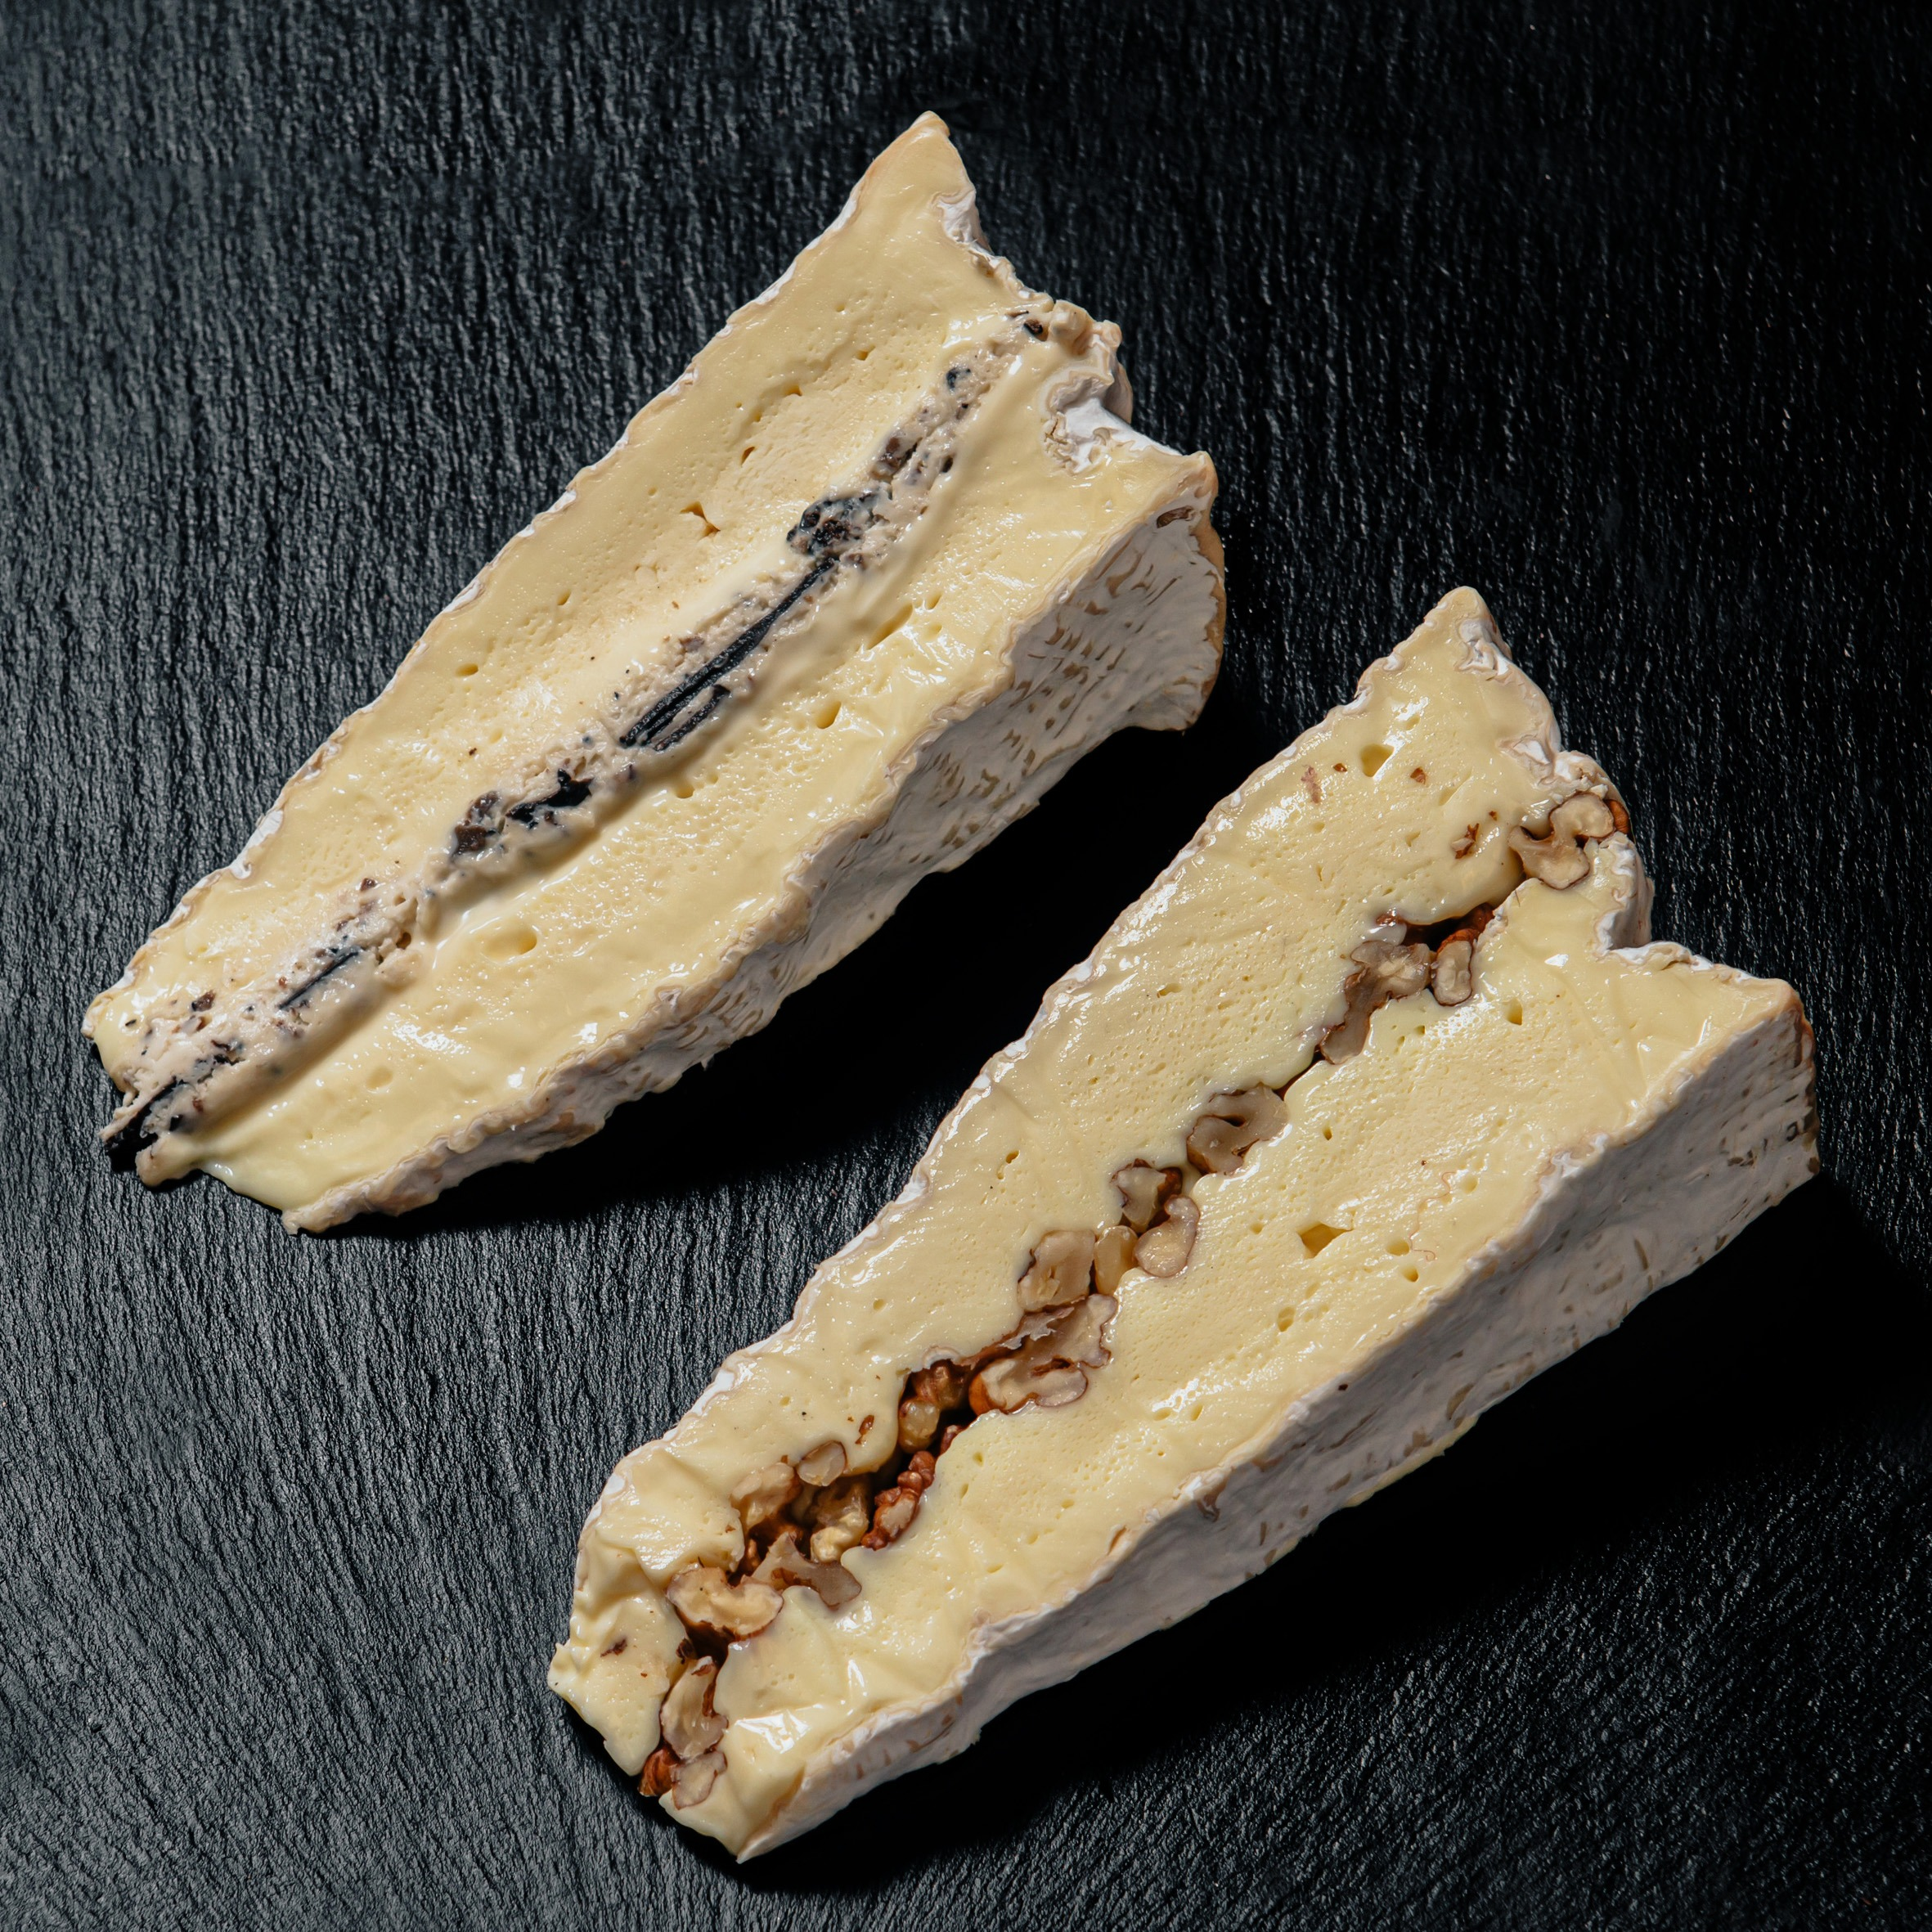 Double brie stuffed with walnuts